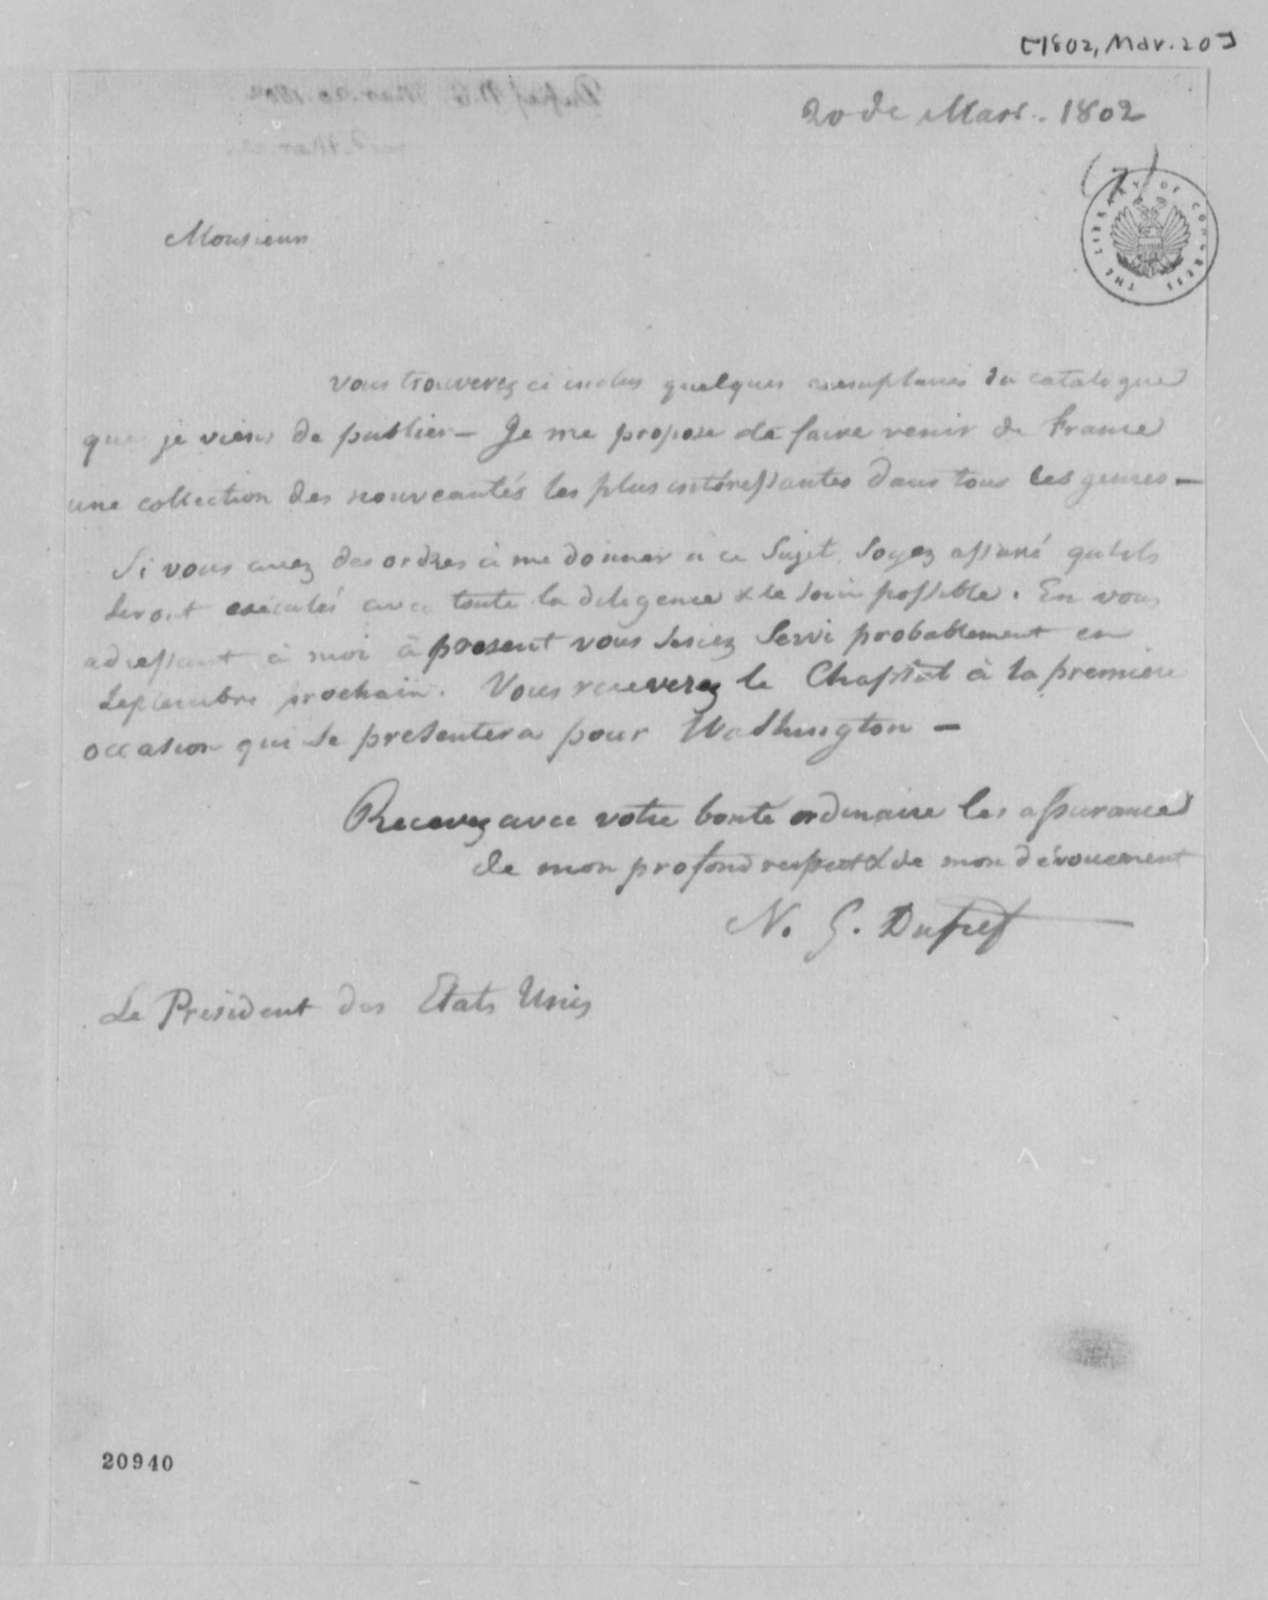 Nicholas Gouin Dufief to Thomas Jefferson, March 20, 1802, in French